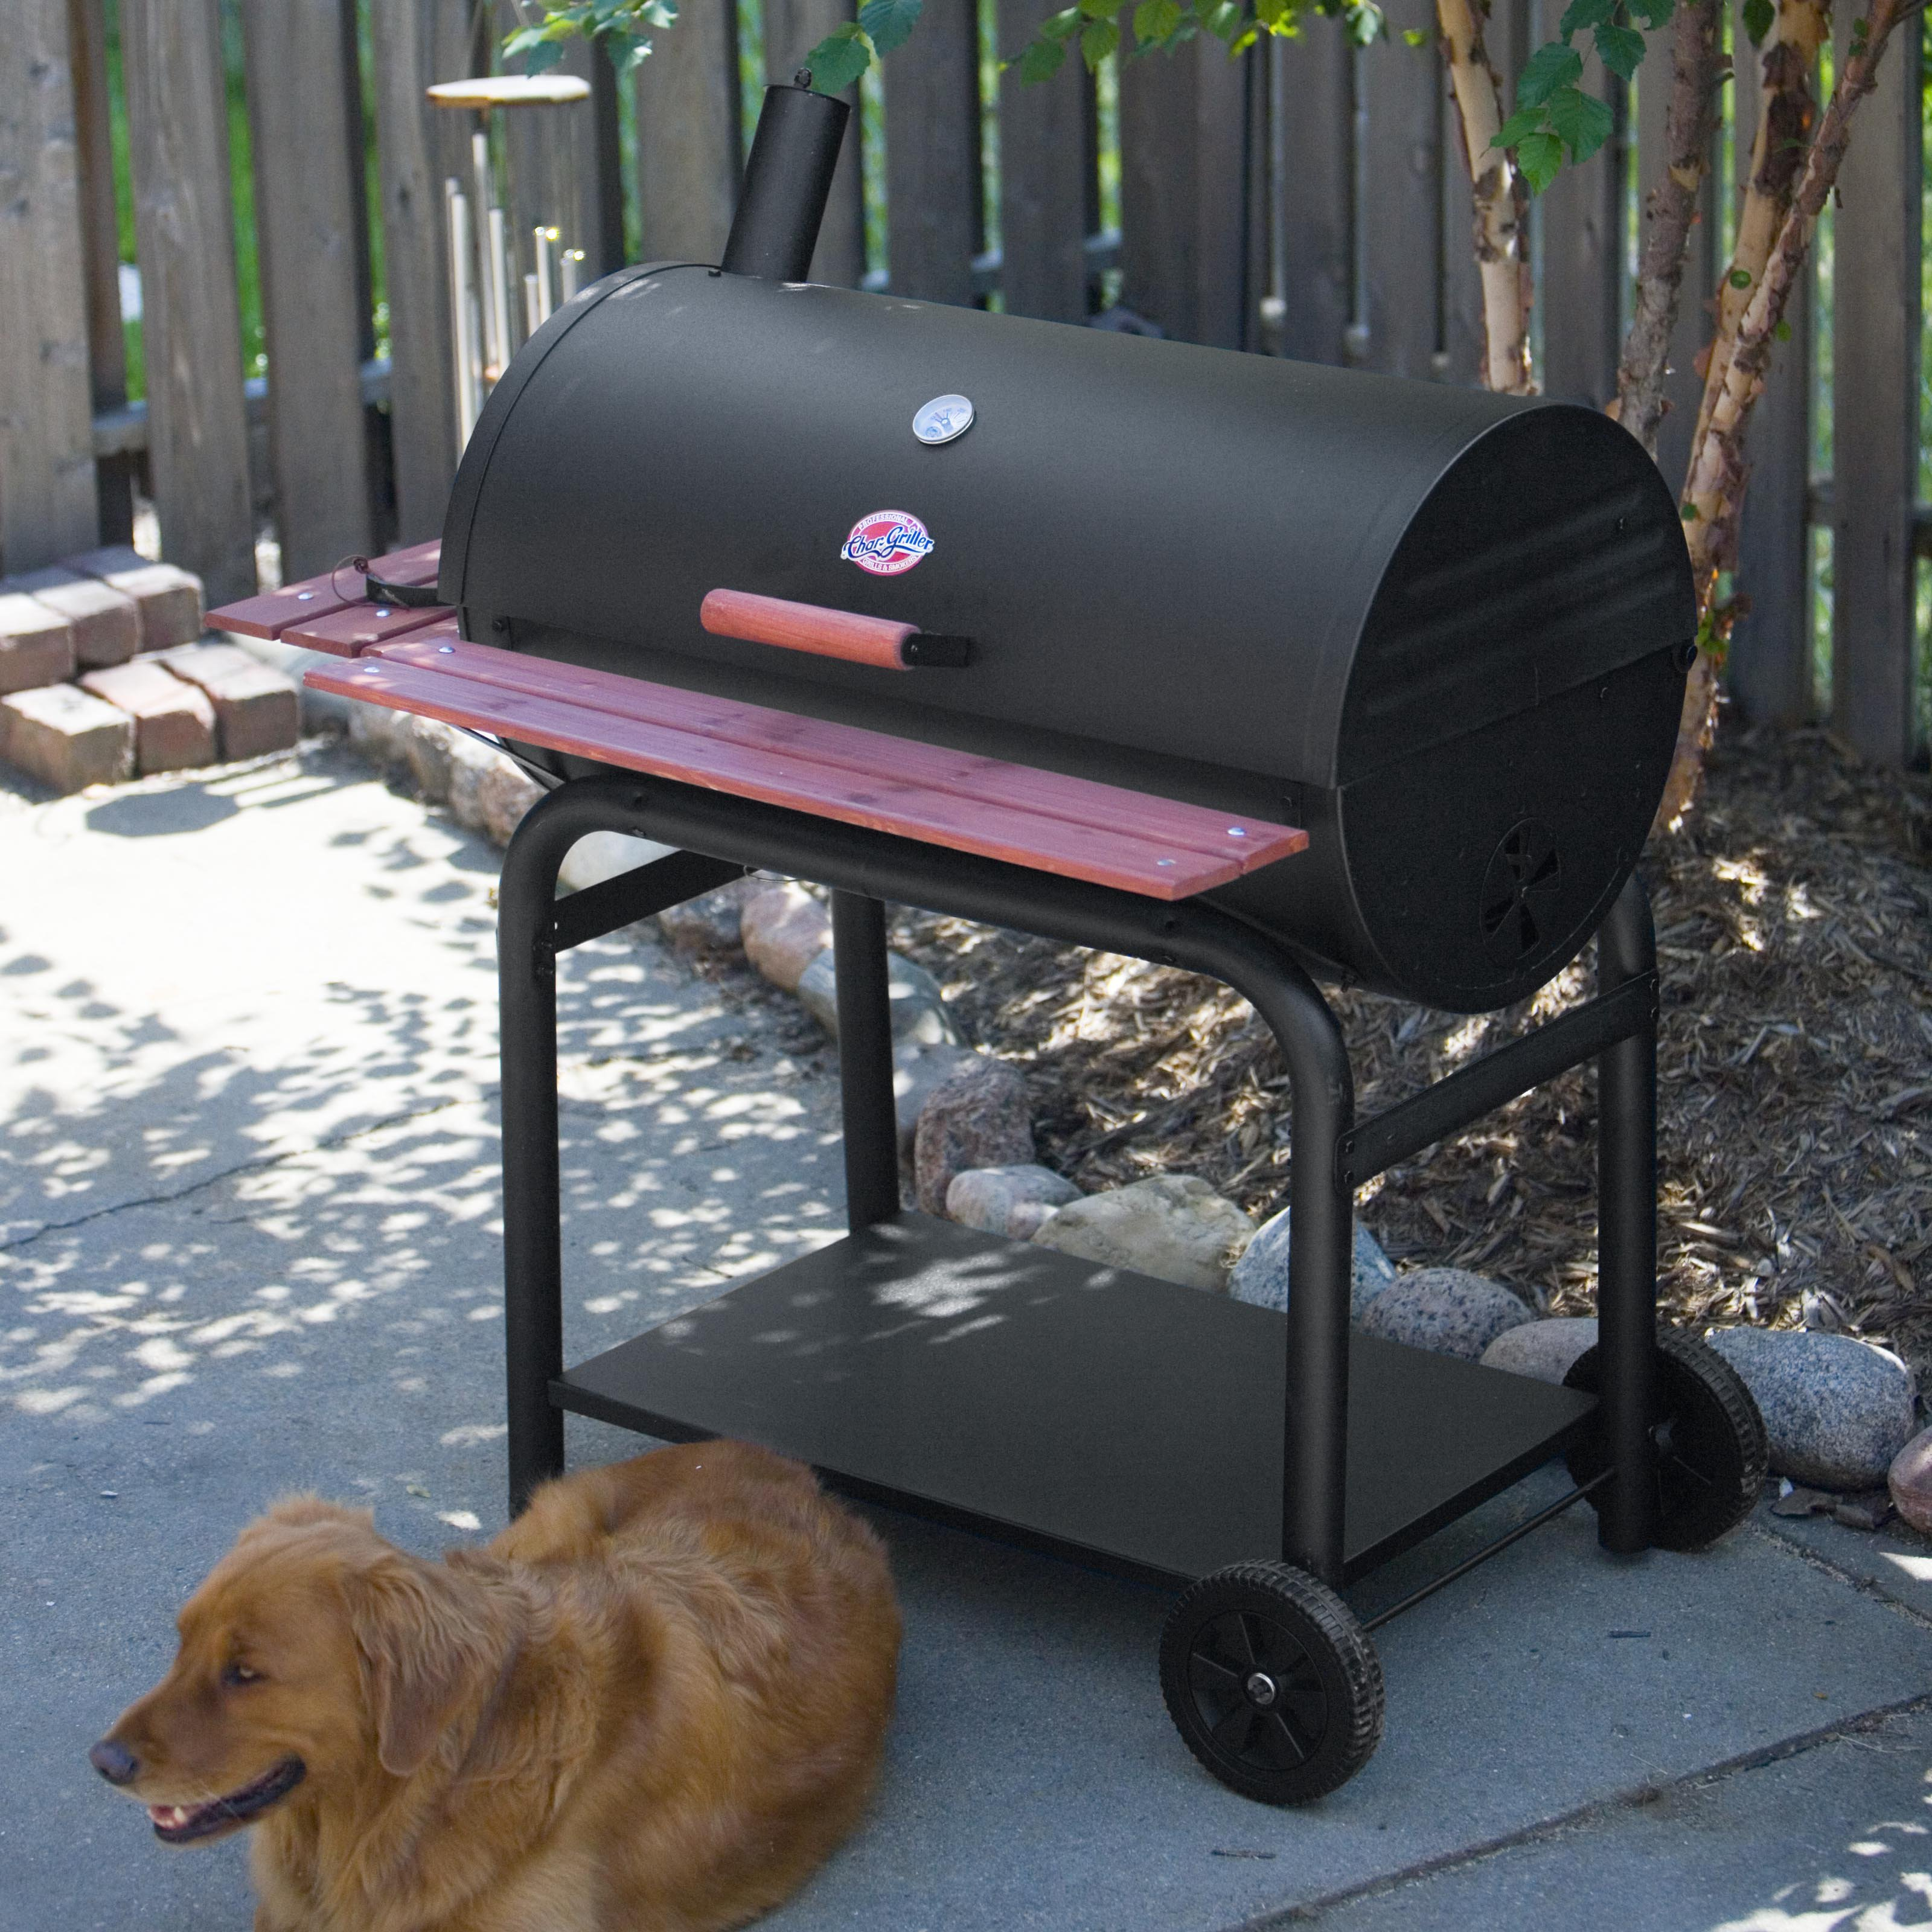 Click here to buy Char-Griller Outlaw Charcoal Grill by A and J Mfg (Char-Griller).